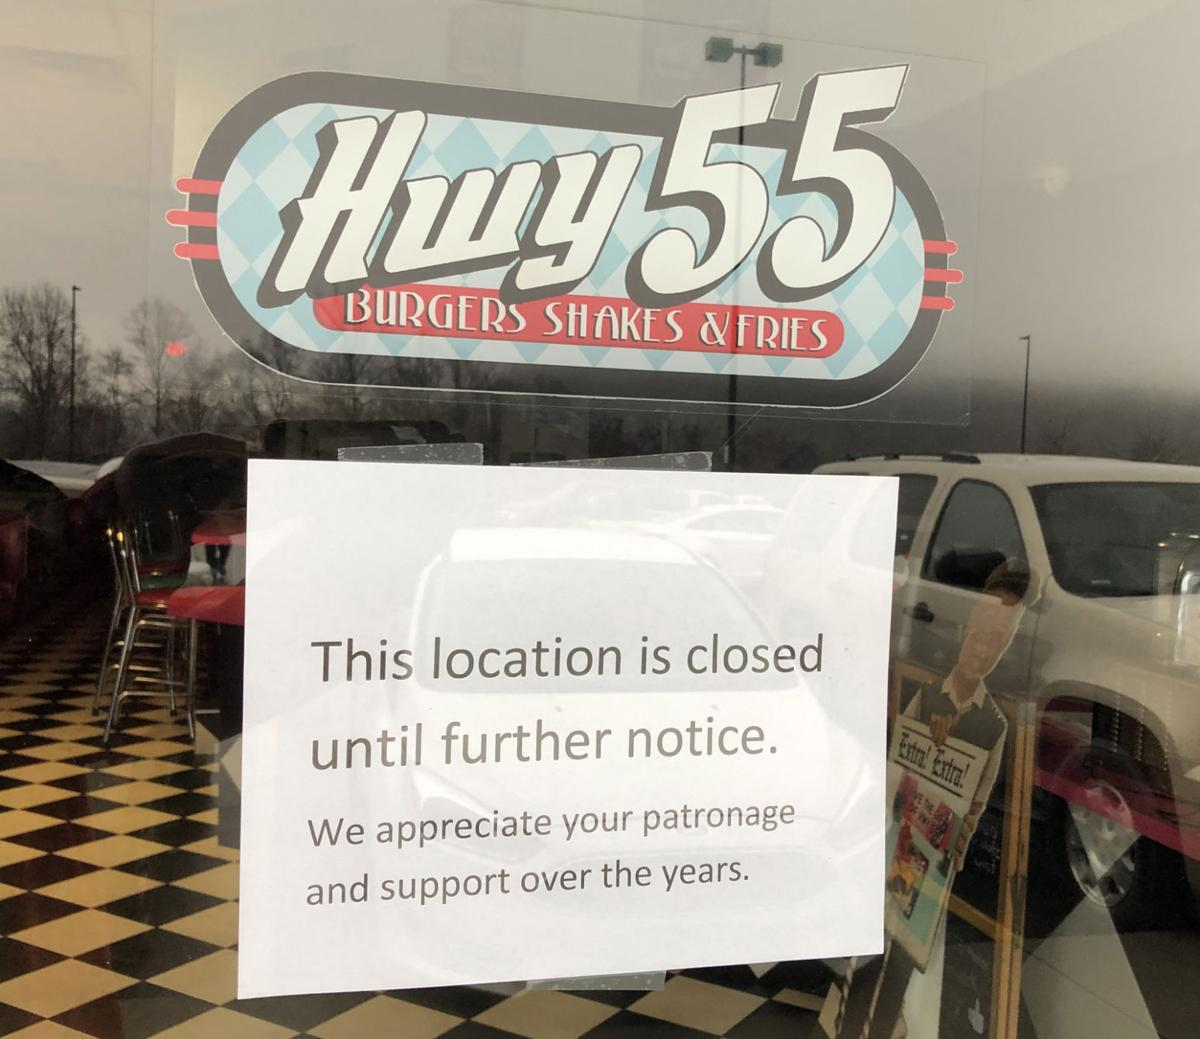 Hwy 55 restaurants, including Marion's, close their doors